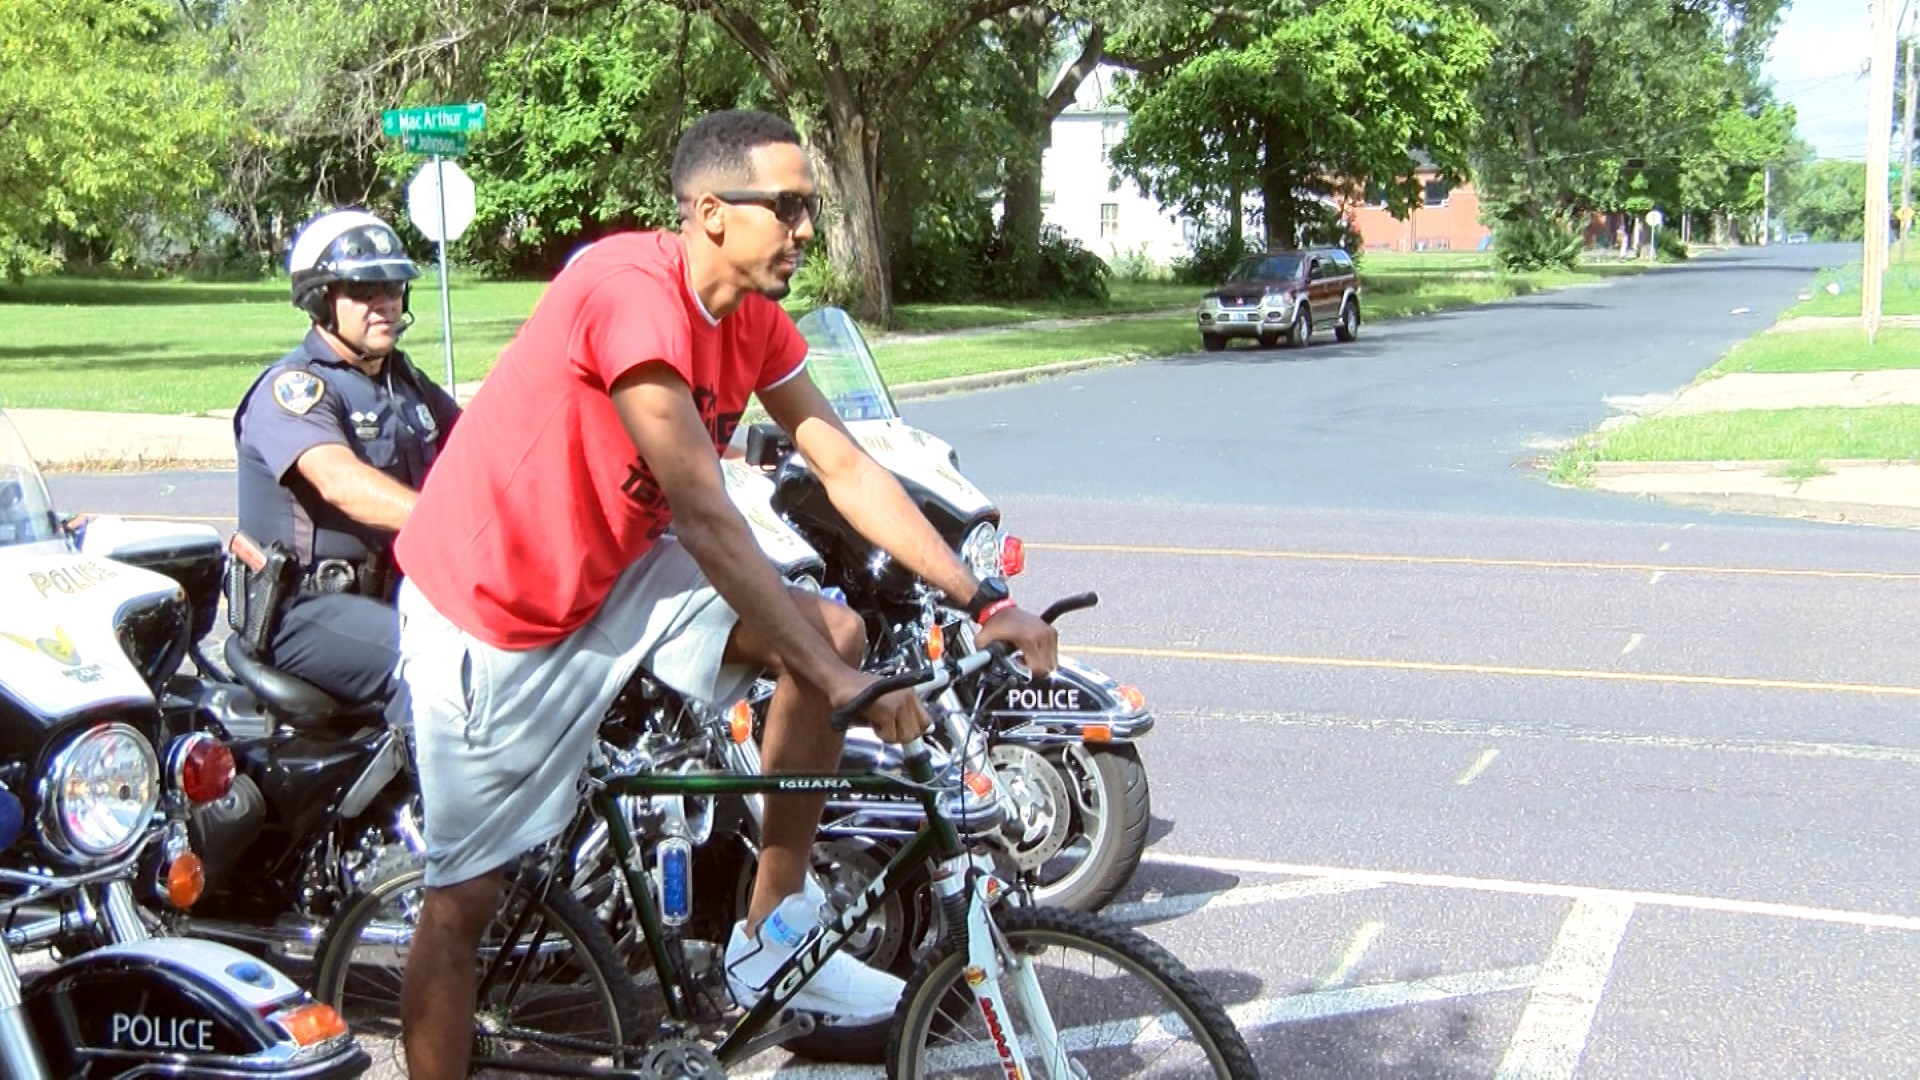 Shaun Livingston bike ride